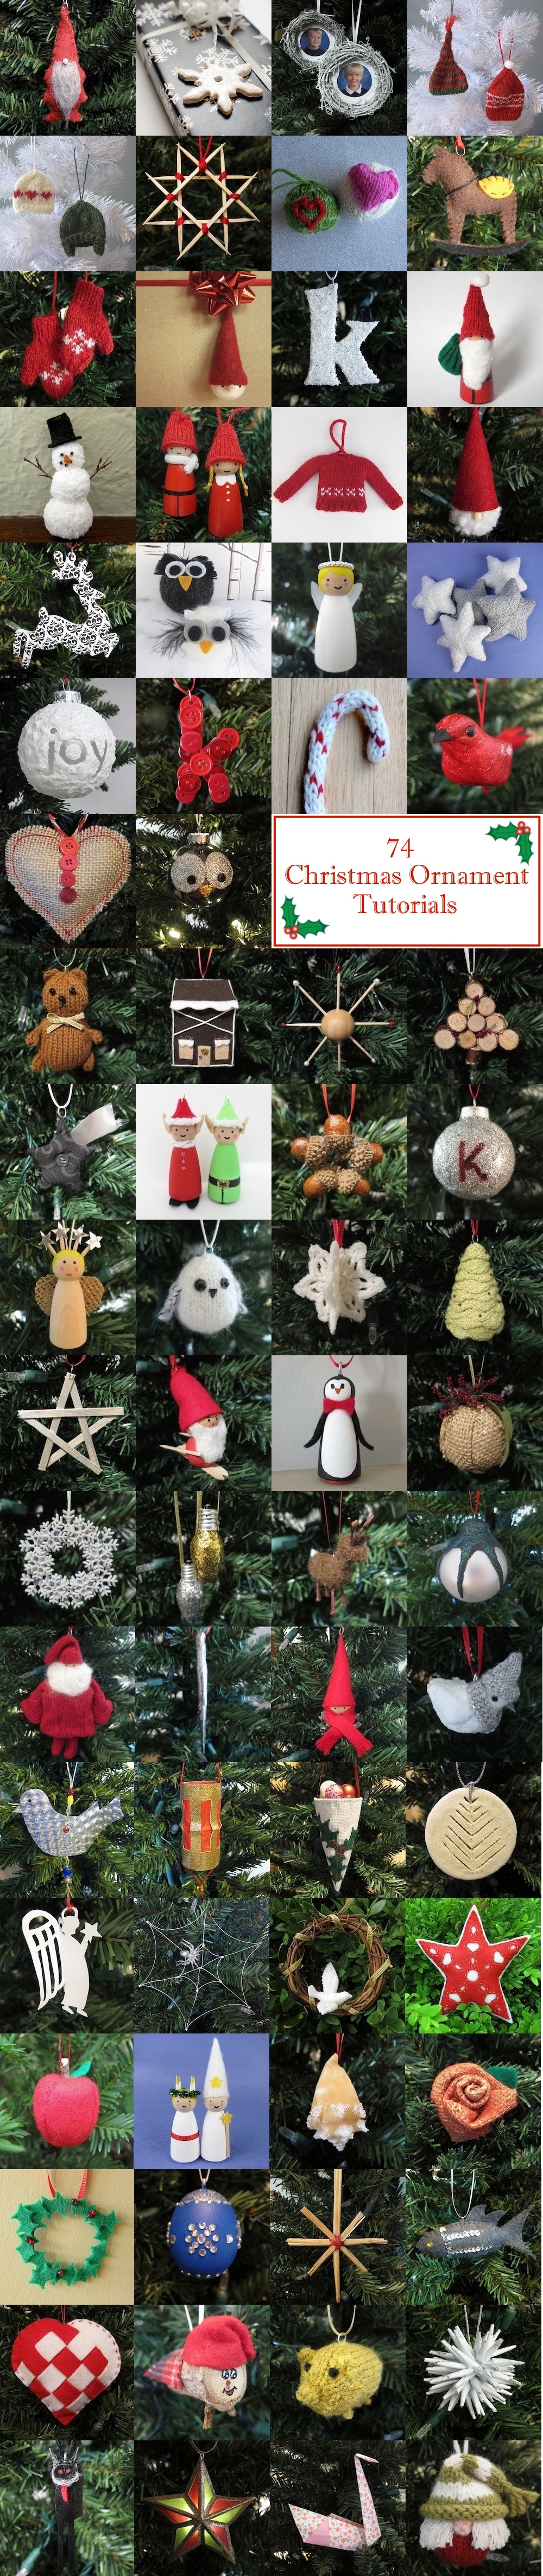 74ChristmasOrnaments